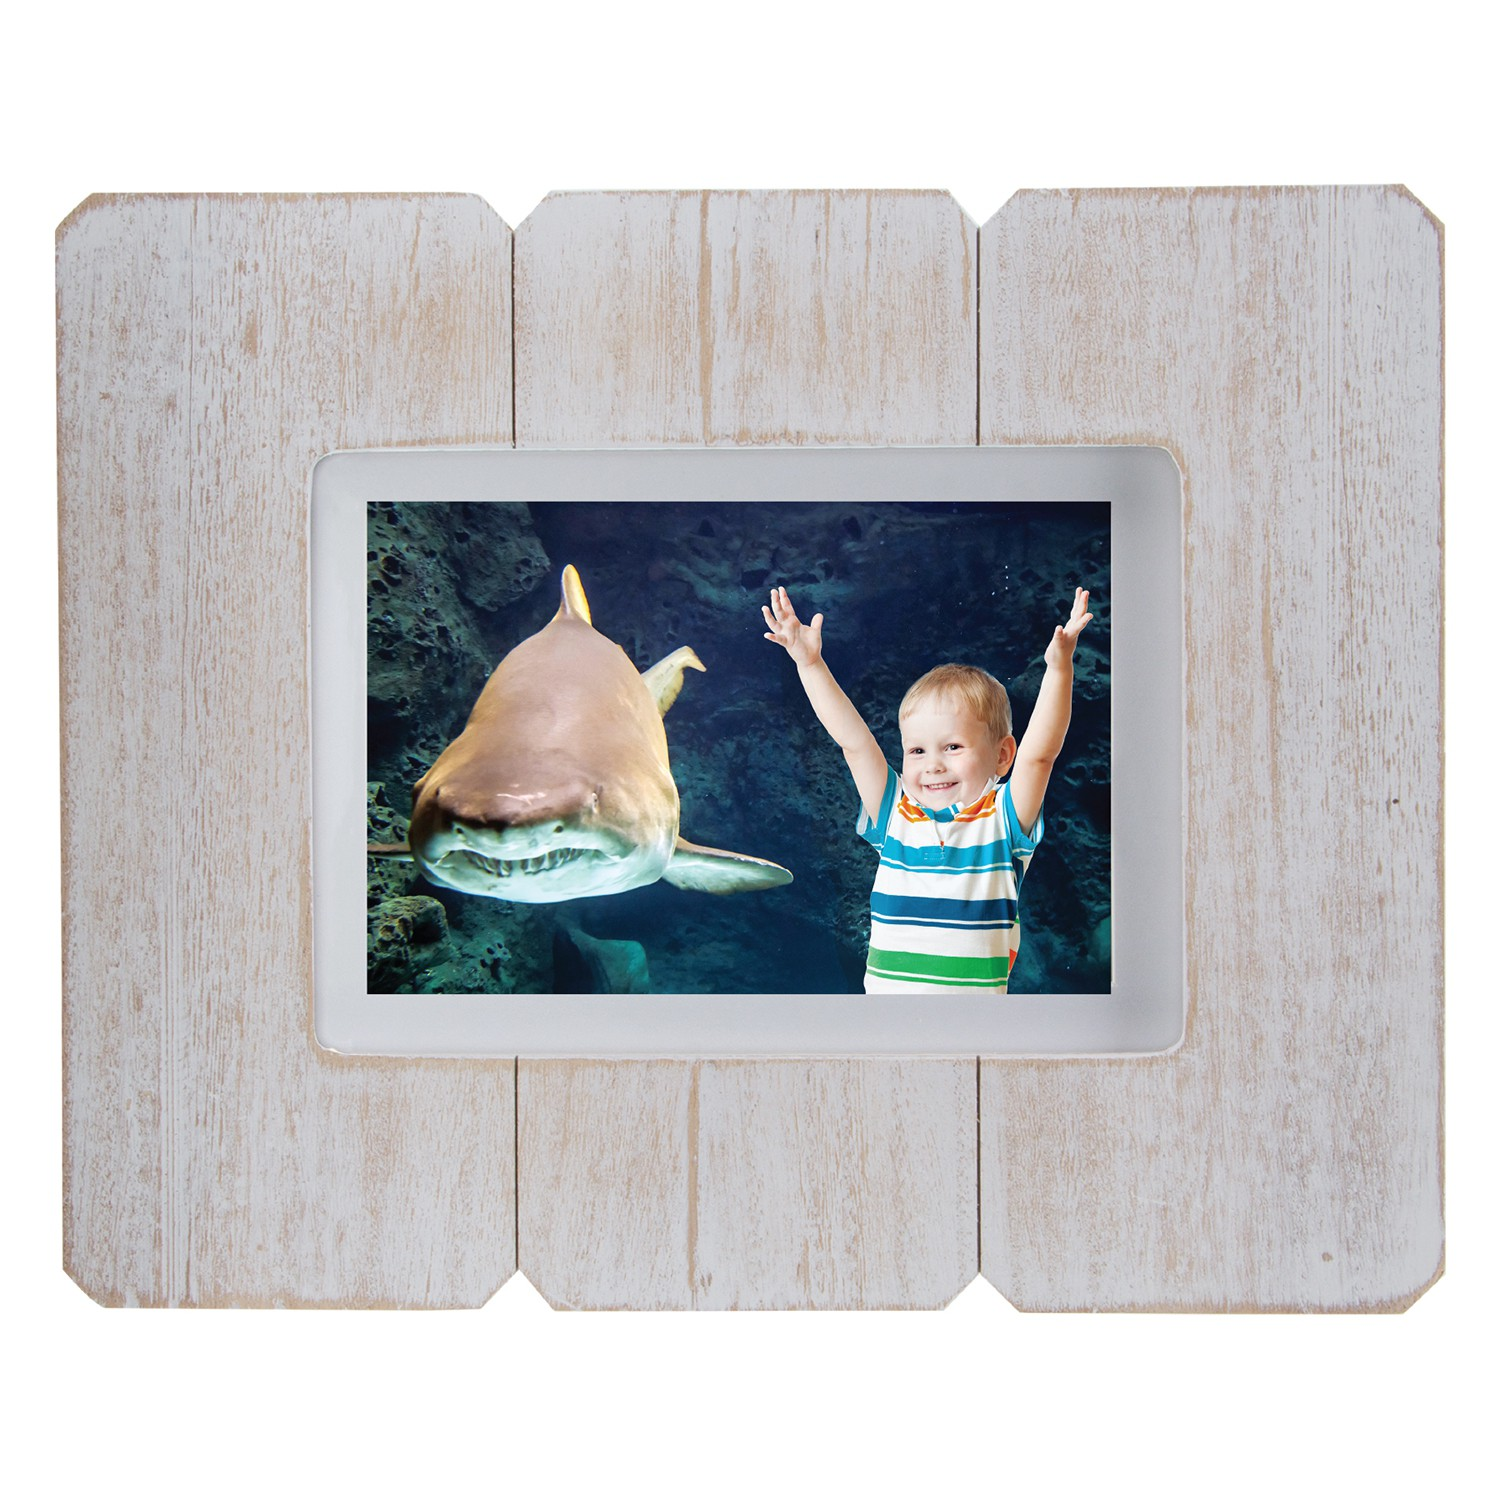 "5"" x 7"" White Distressed Wood Picture Frame"